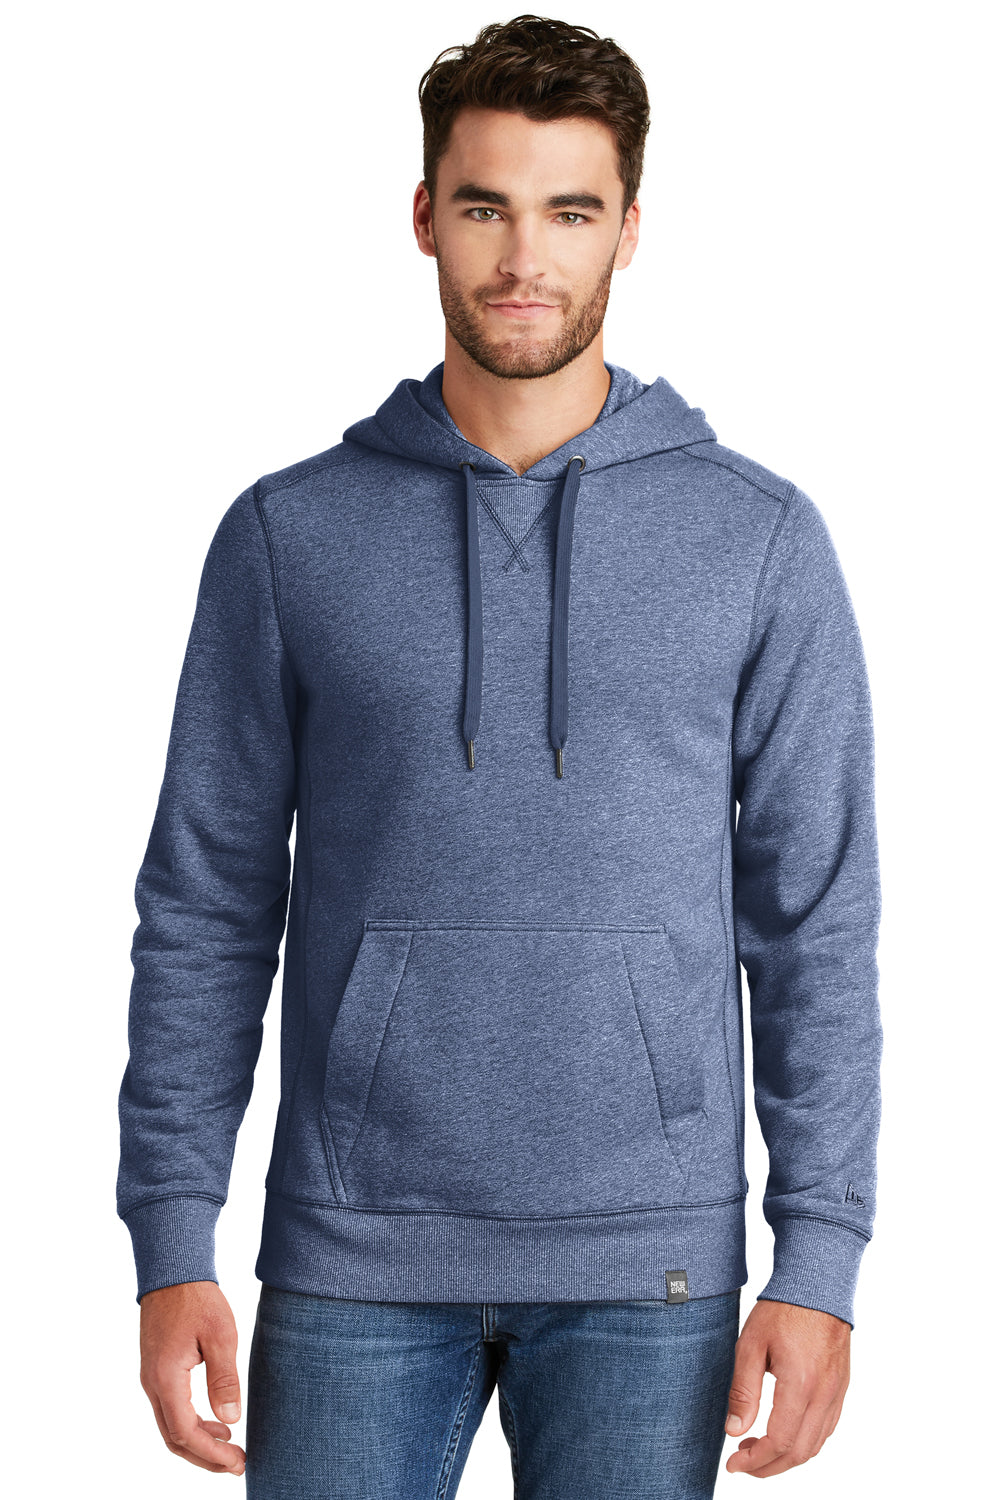 New Era NEA500 Mens Sueded French Terry Hooded Sweatshirt Hoodie Dark Royal Blue Twist Front